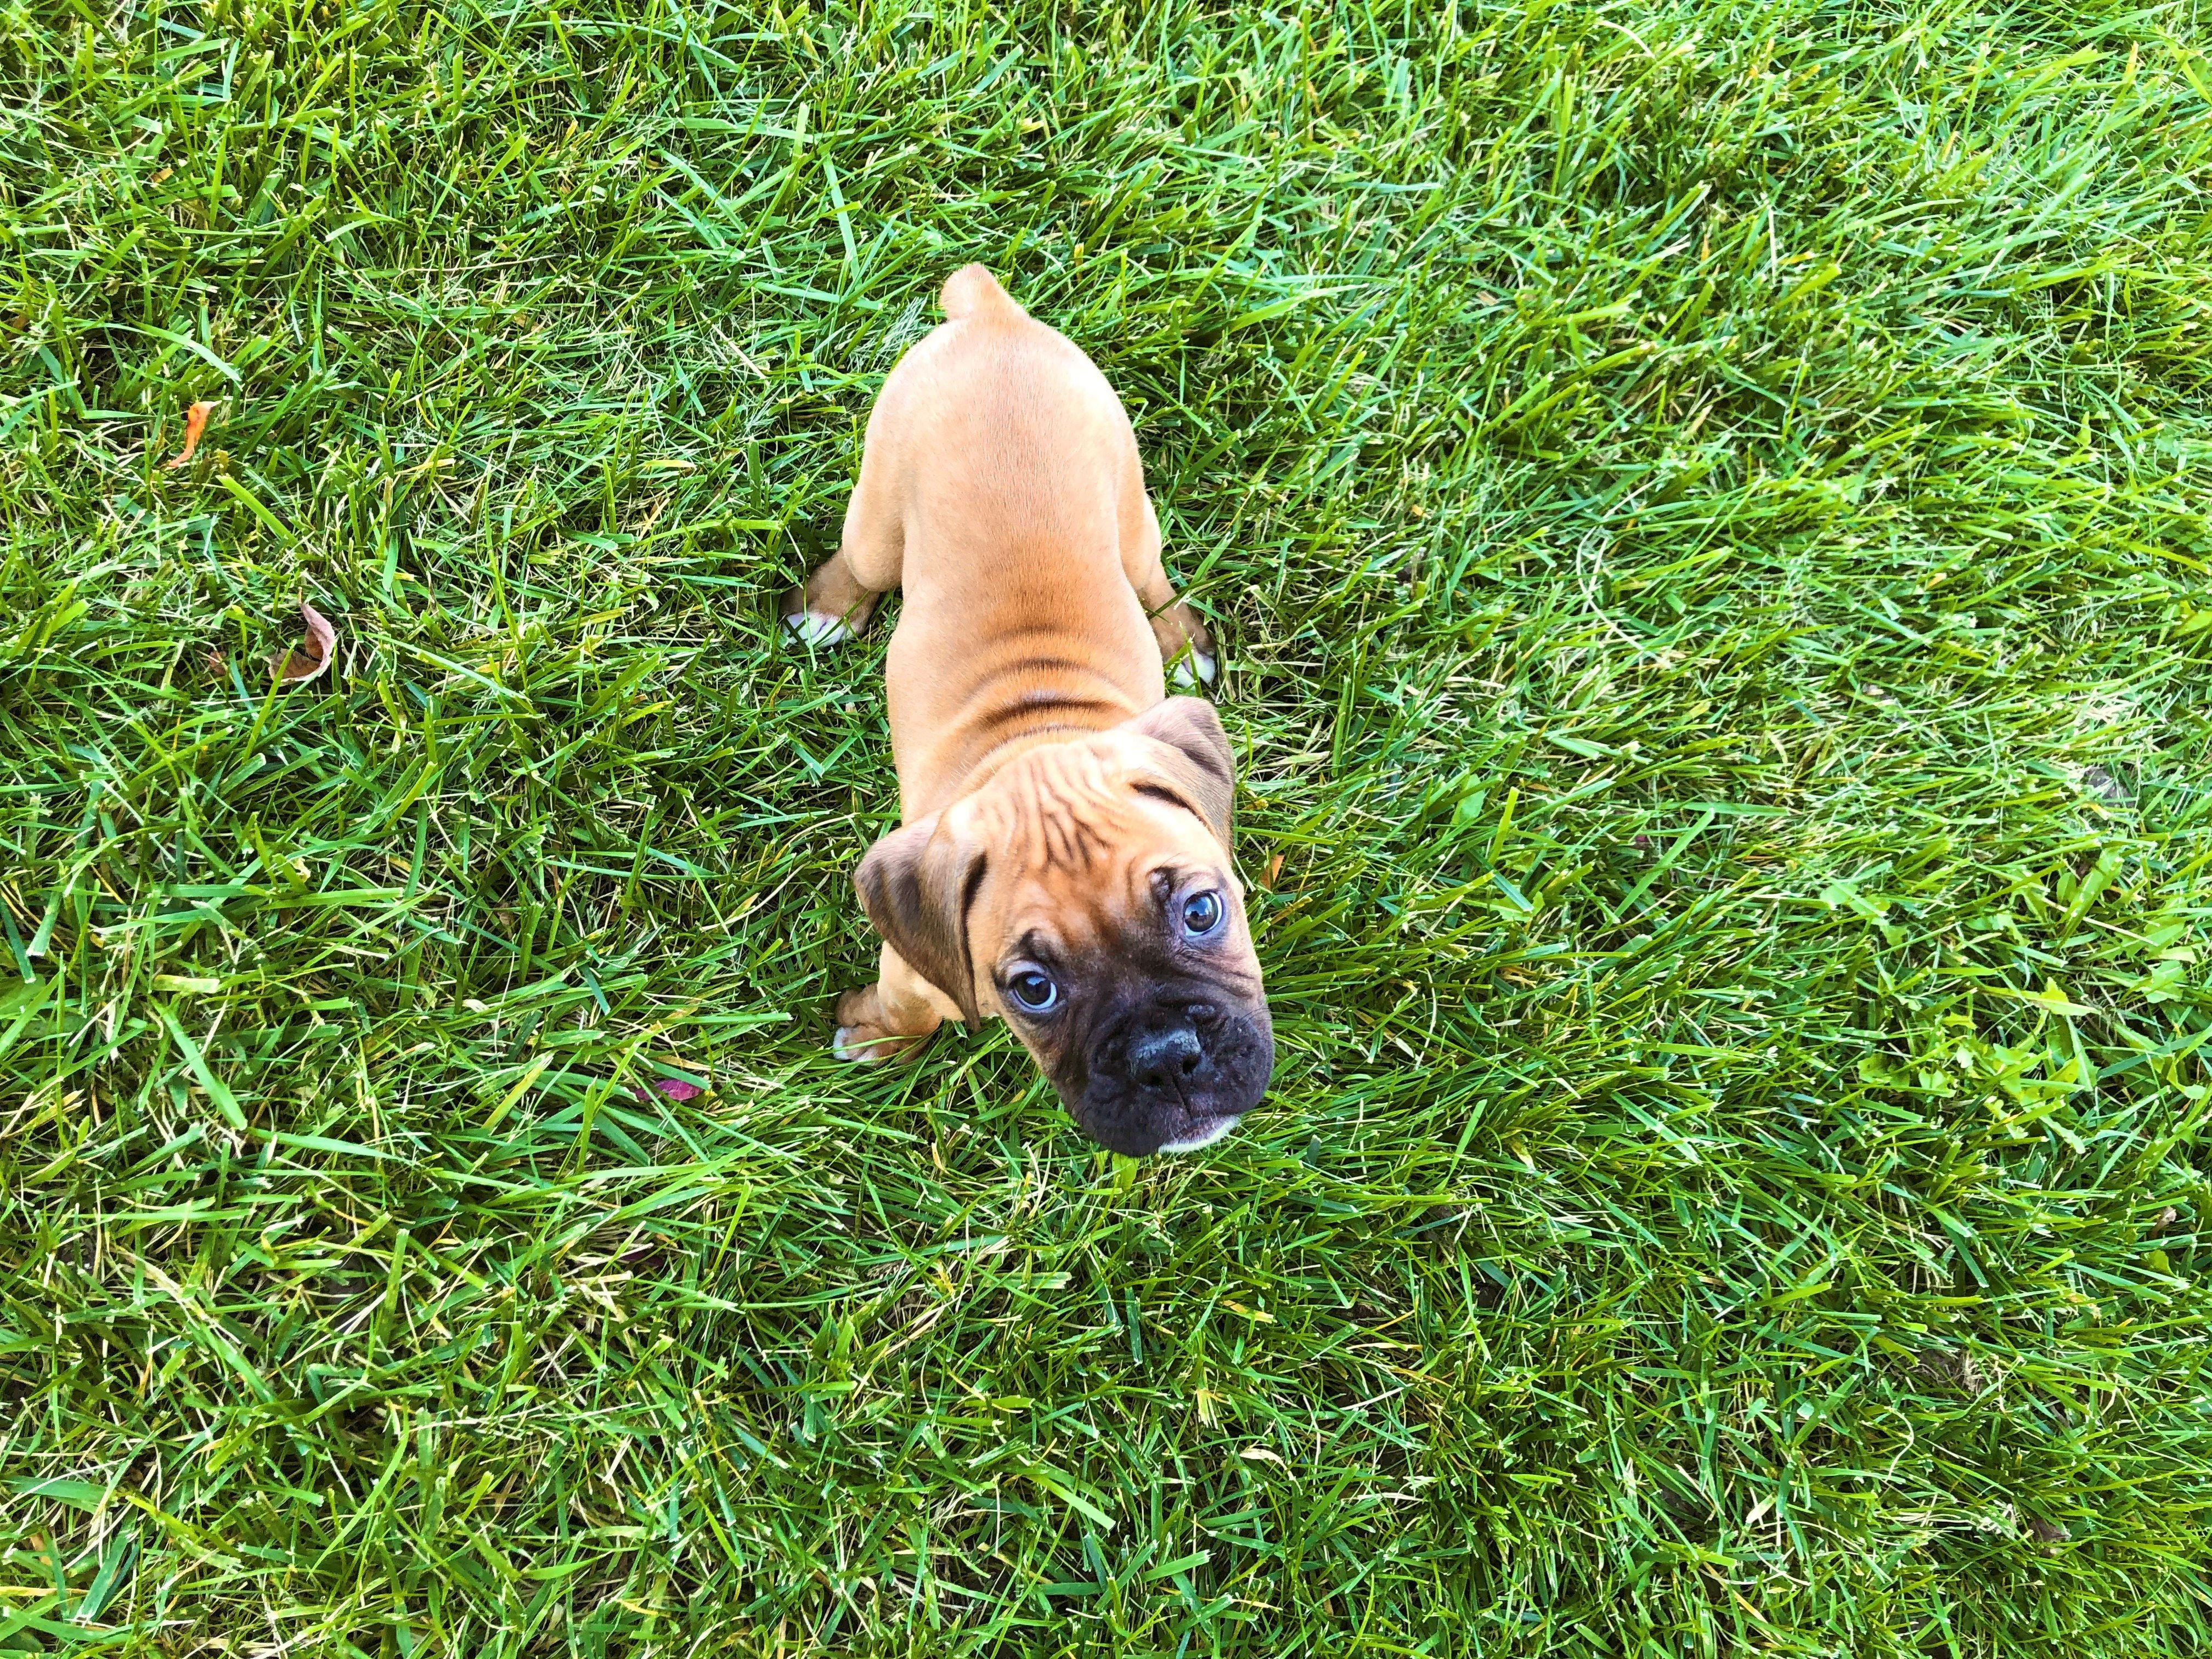 Petland Kansas City Has Boxer Puppies For Sale Check Out All Our Available Puppies Boxer Petland Puppies For Sale Boxer Puppies For Sale Puppy Friends